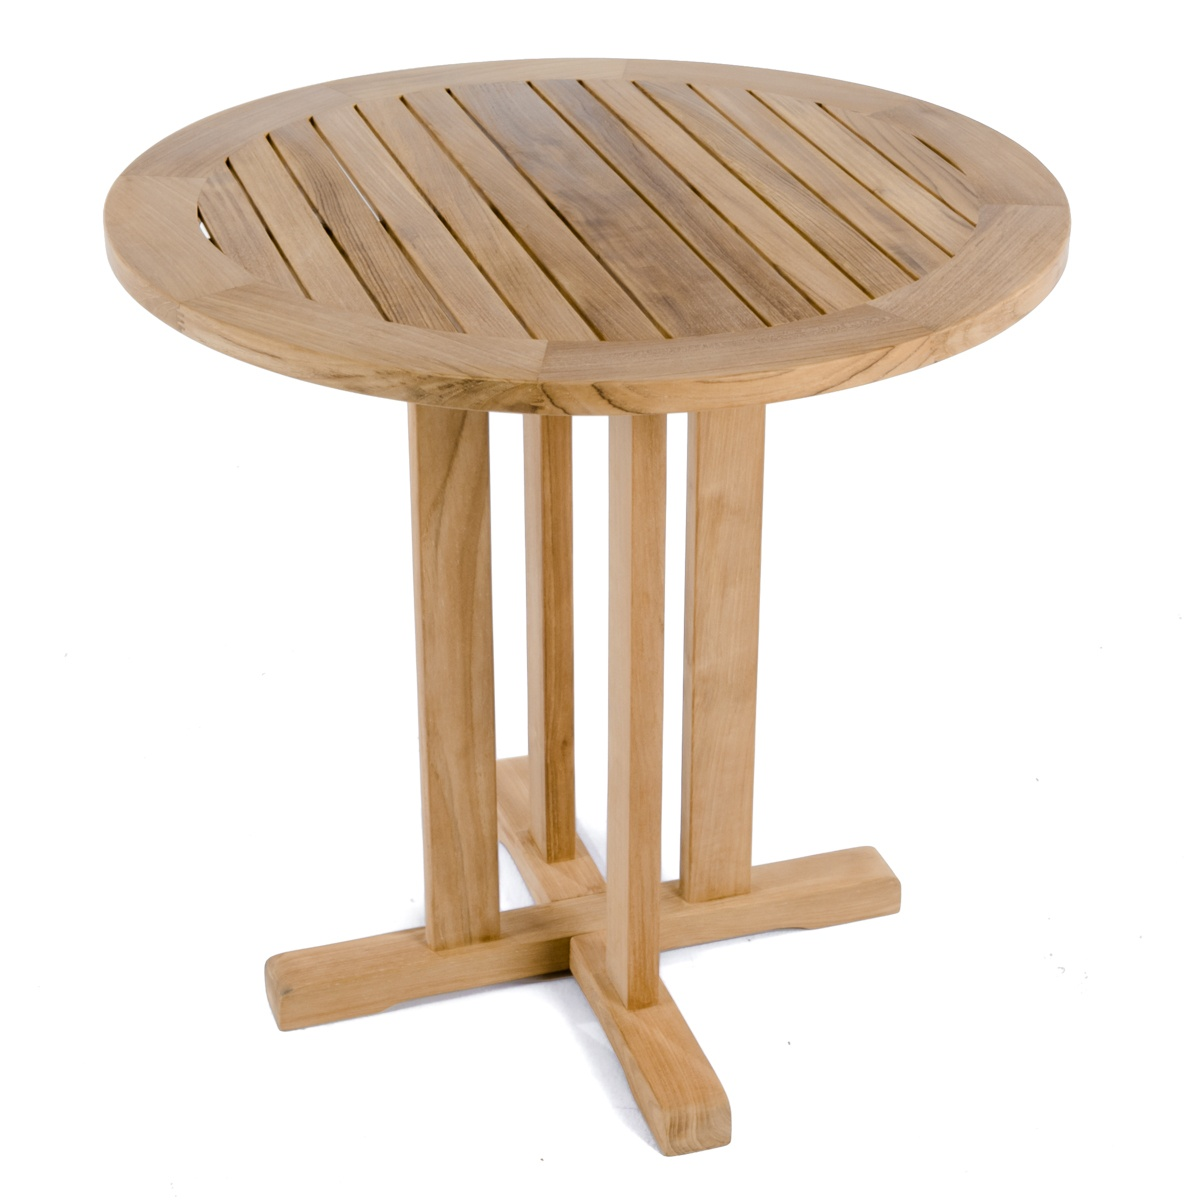 Attractive Westminster Teak 30 Inch Round Bistro Table   Comm   Westminster Teak  Outdoor Furniture